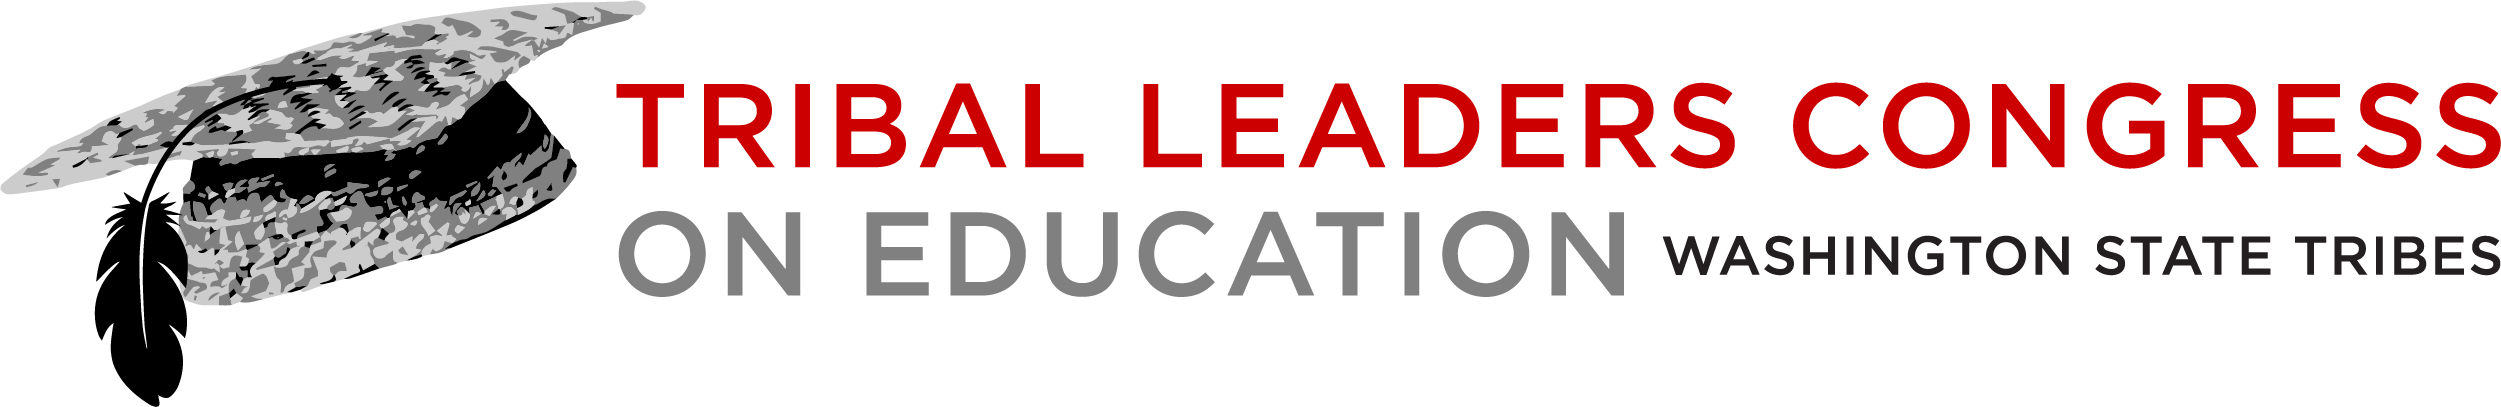 Tribal Leaders Congress on Education